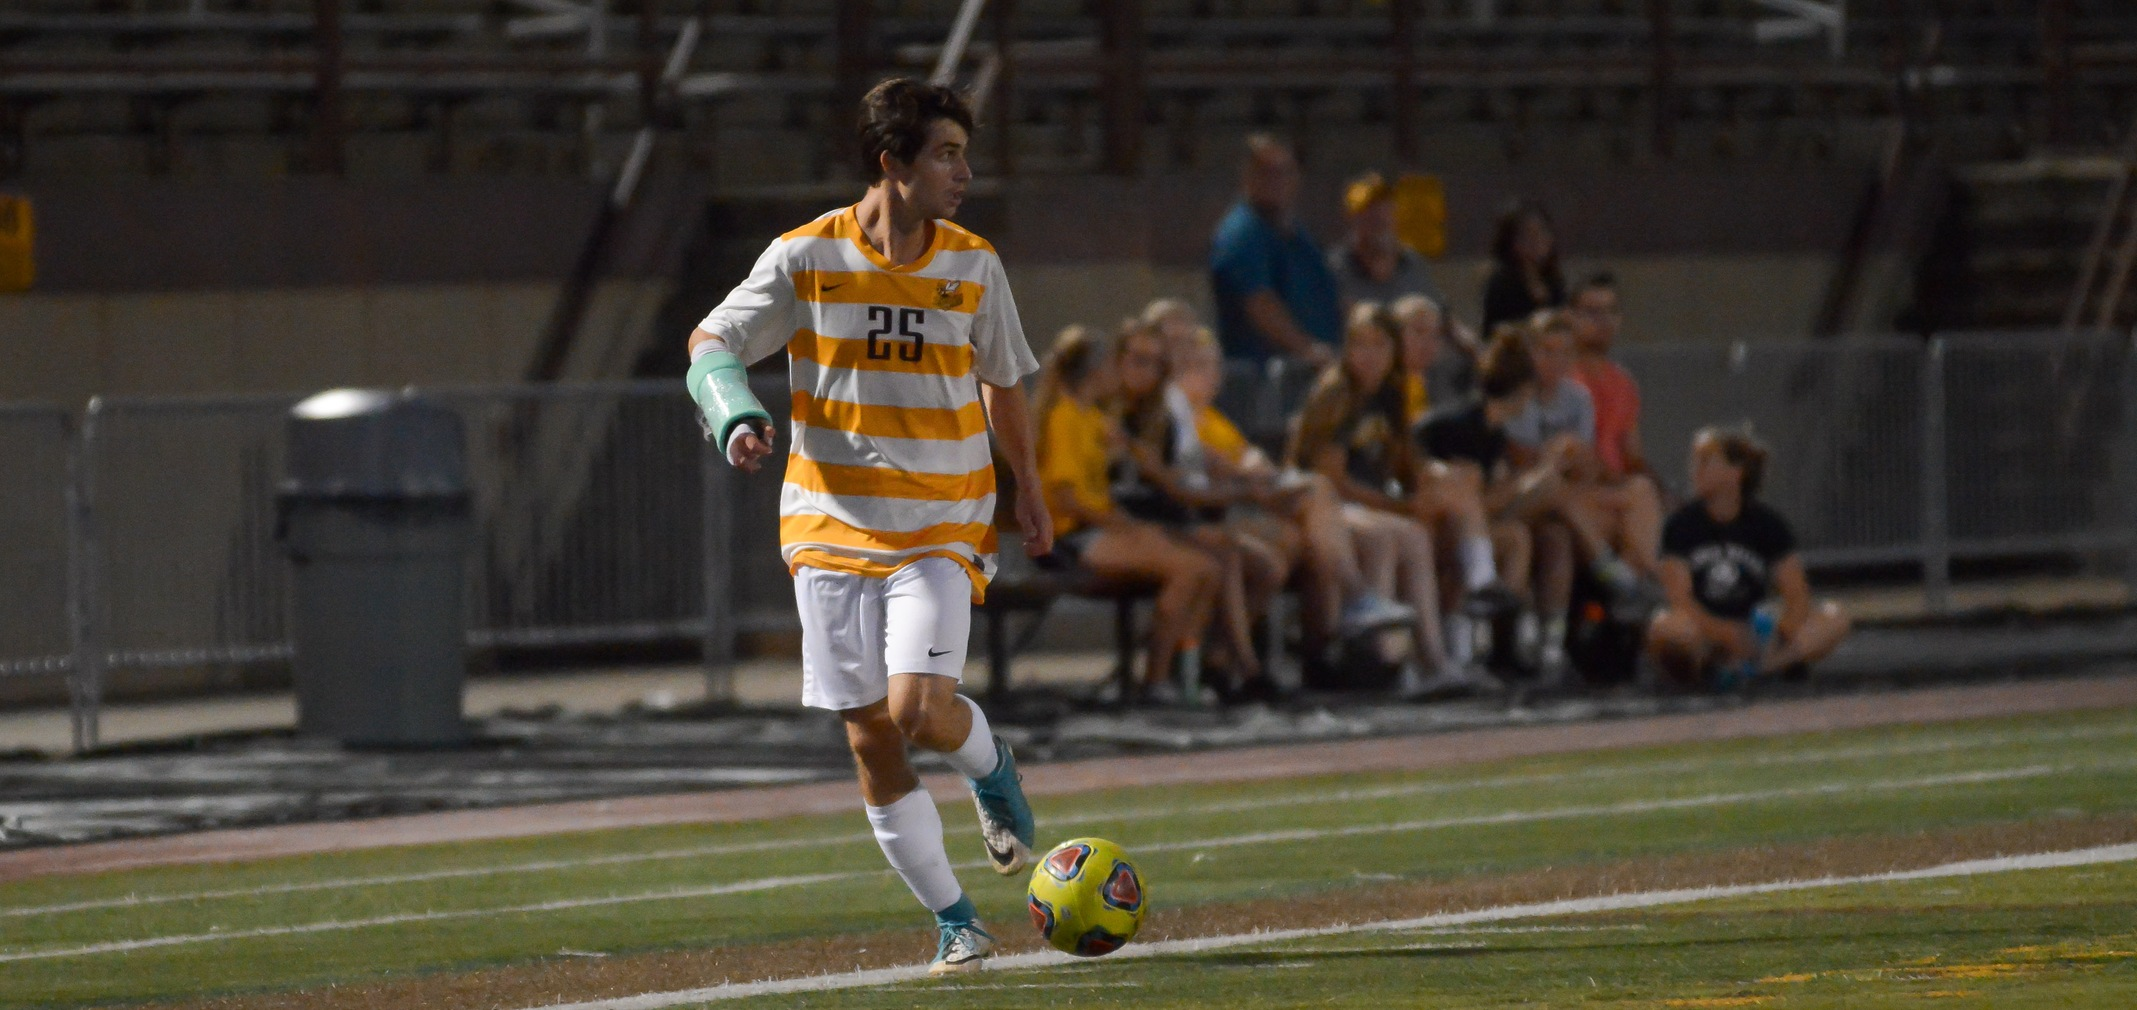 Junior All-OAC forward Danny Ruple scored both BW goals in a 3-2 loss to Houghton (N.Y.)